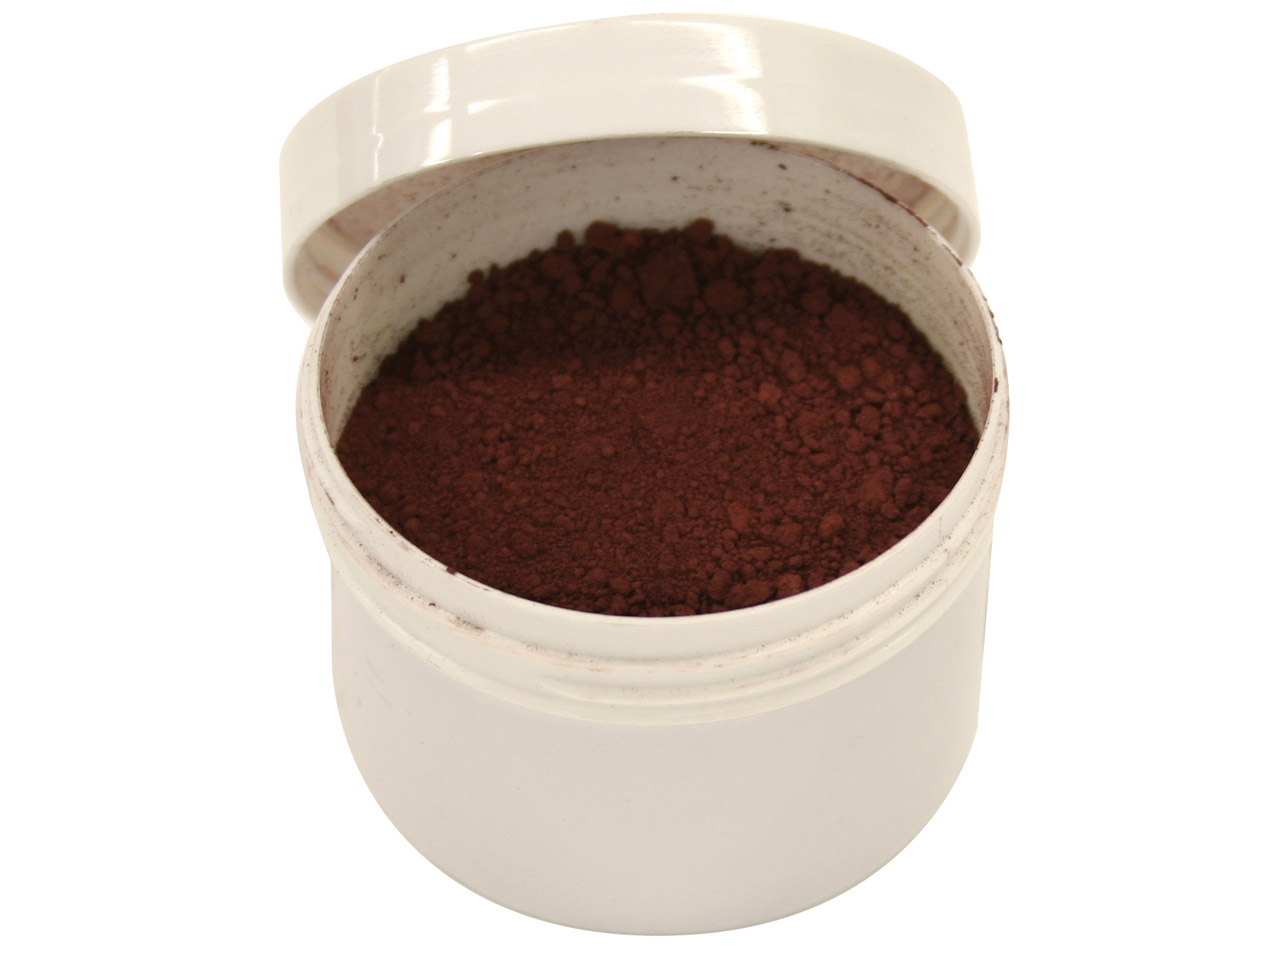 Jewellers Rouge Powder 120g/4oz